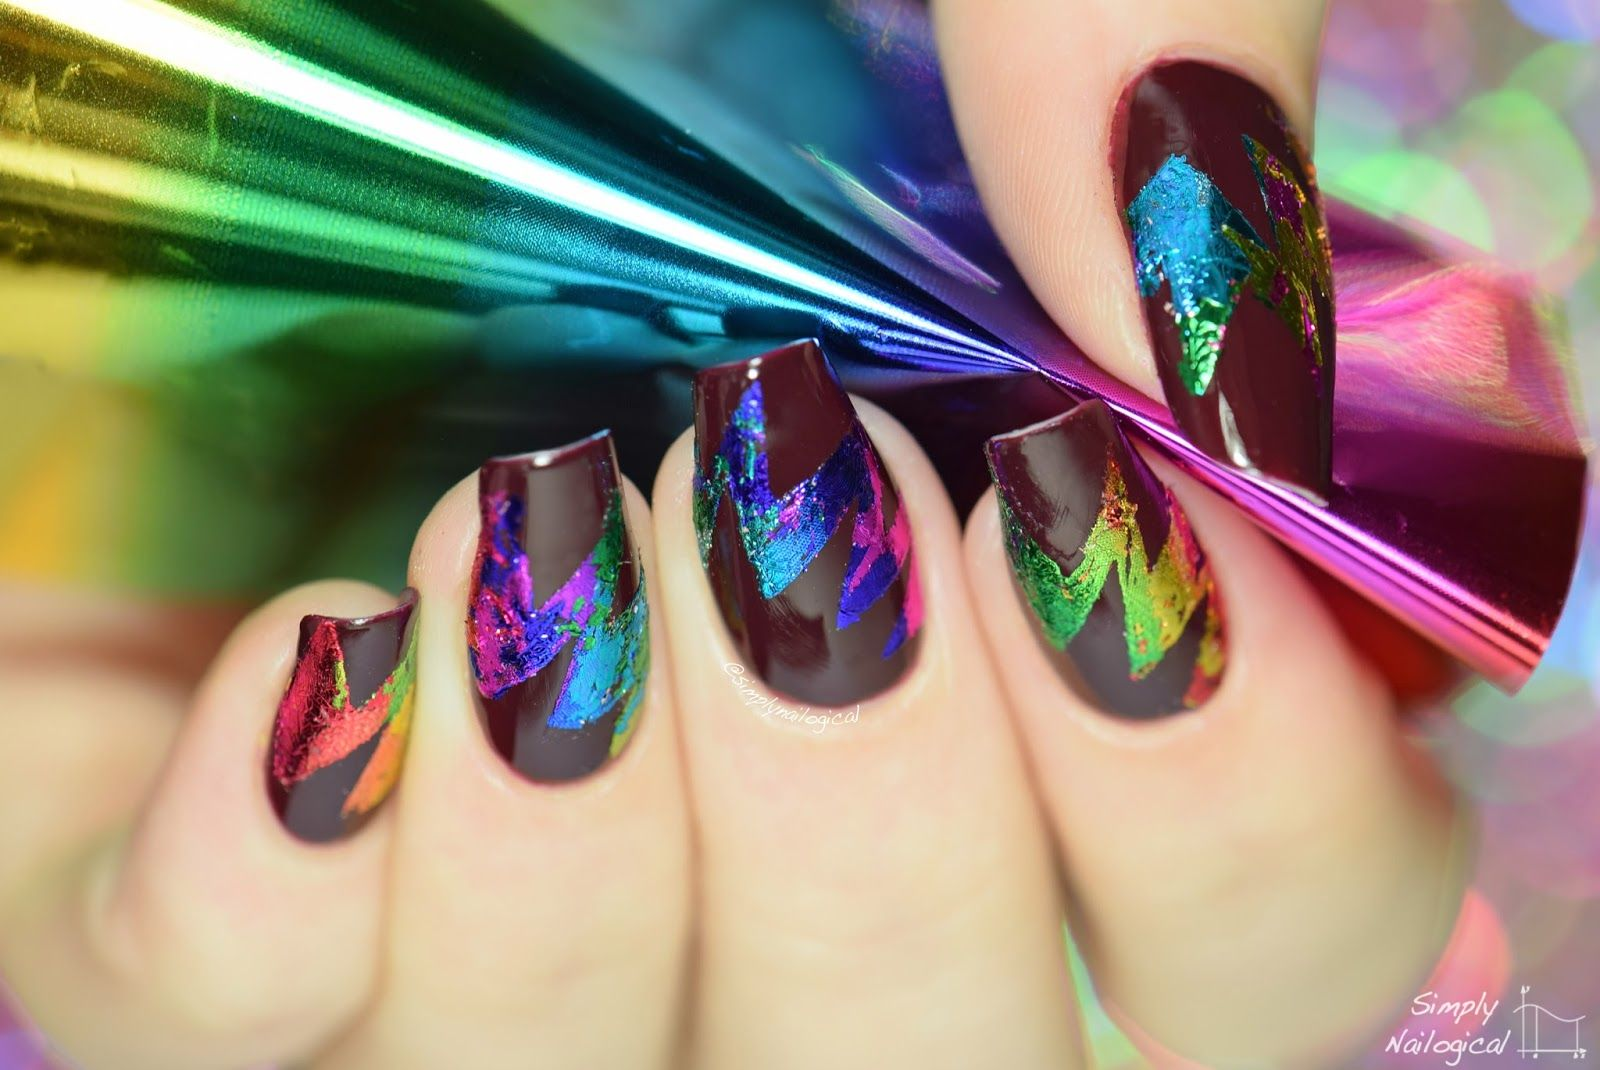 Simply Nailogical: Abstract starburst rainbow foil nail art | Nail ...